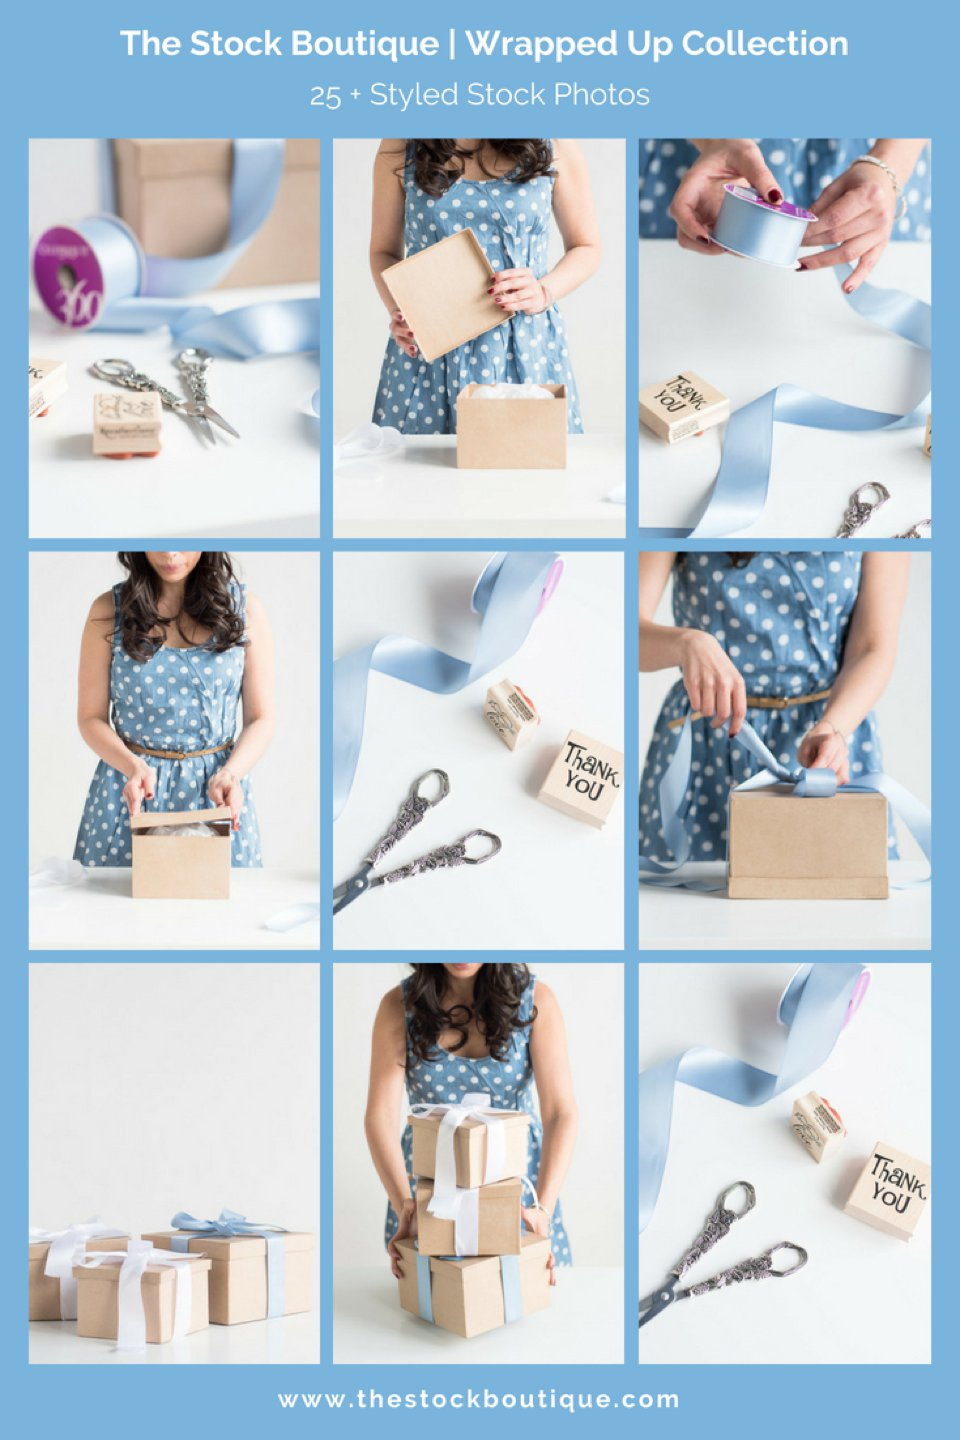 Female Gift Wrapping Stock Photography. We giveaway a stock photo every month when you subscribe! www.thestockboutique.com   #stockphoto     #femaleentrepreneur     #girlboss